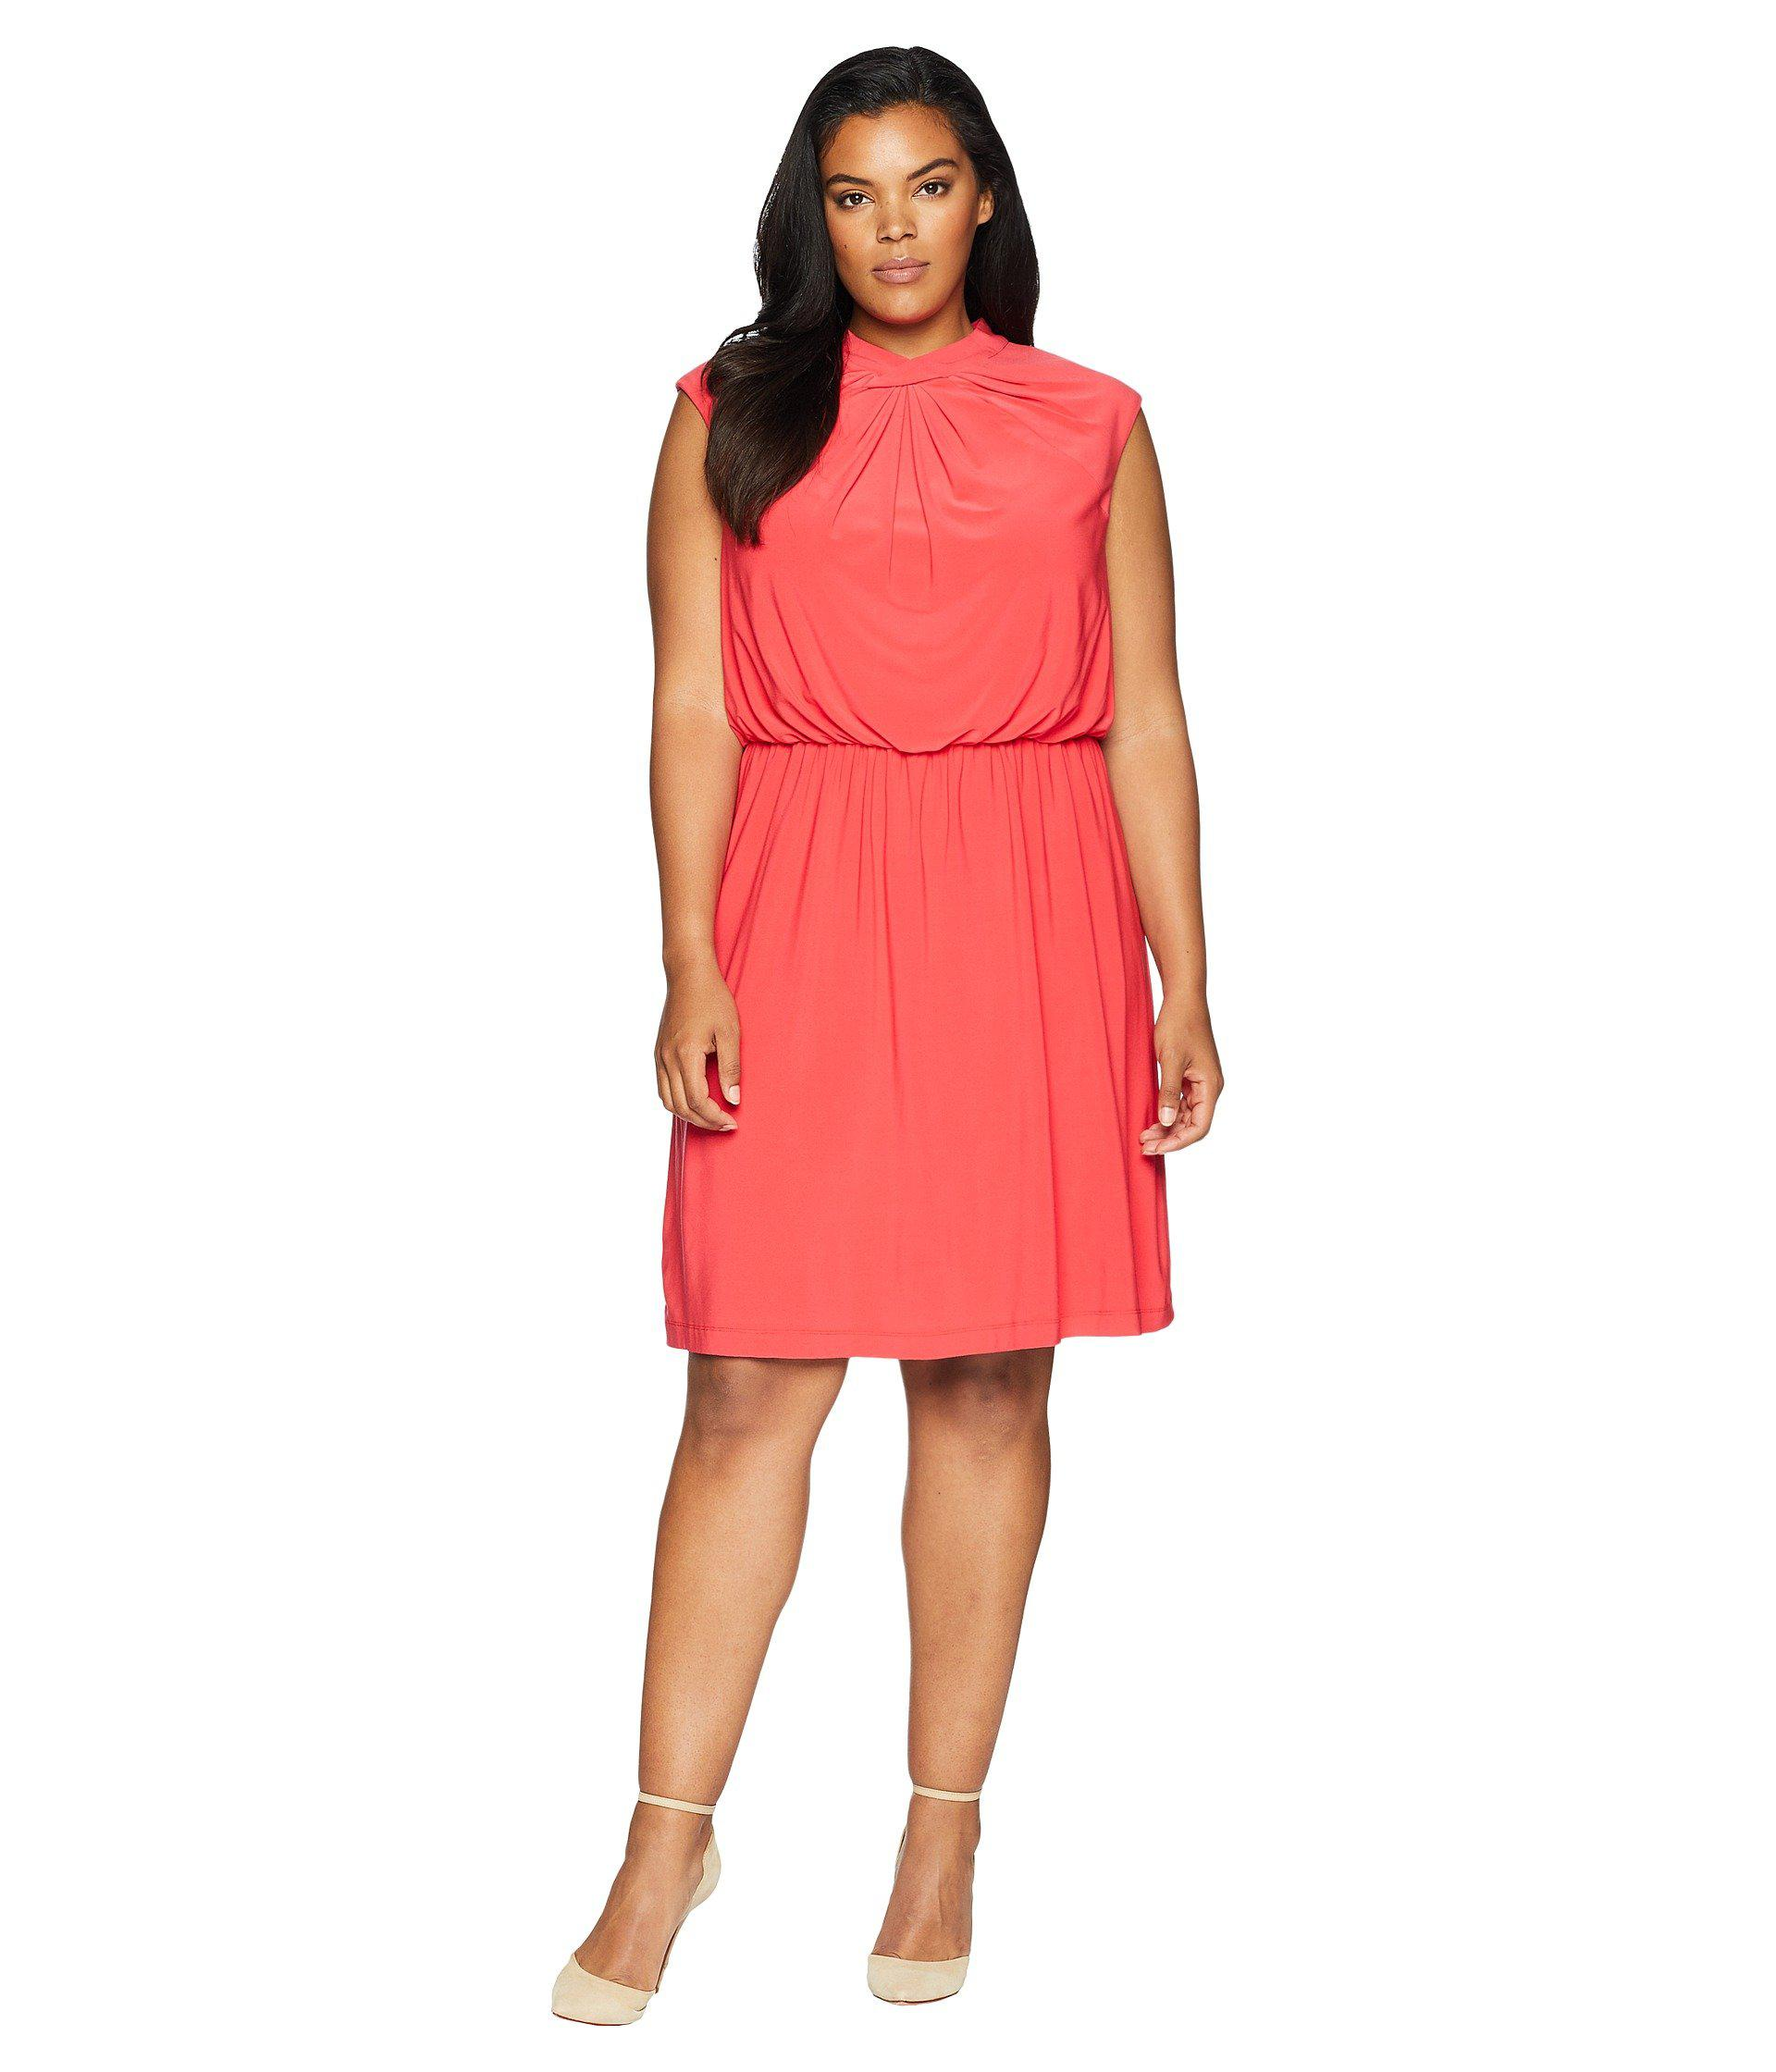 a94606f86c7 Lyst - Adrianna Papell Plus Size Matte Jersey Fit And Flare in Red ...